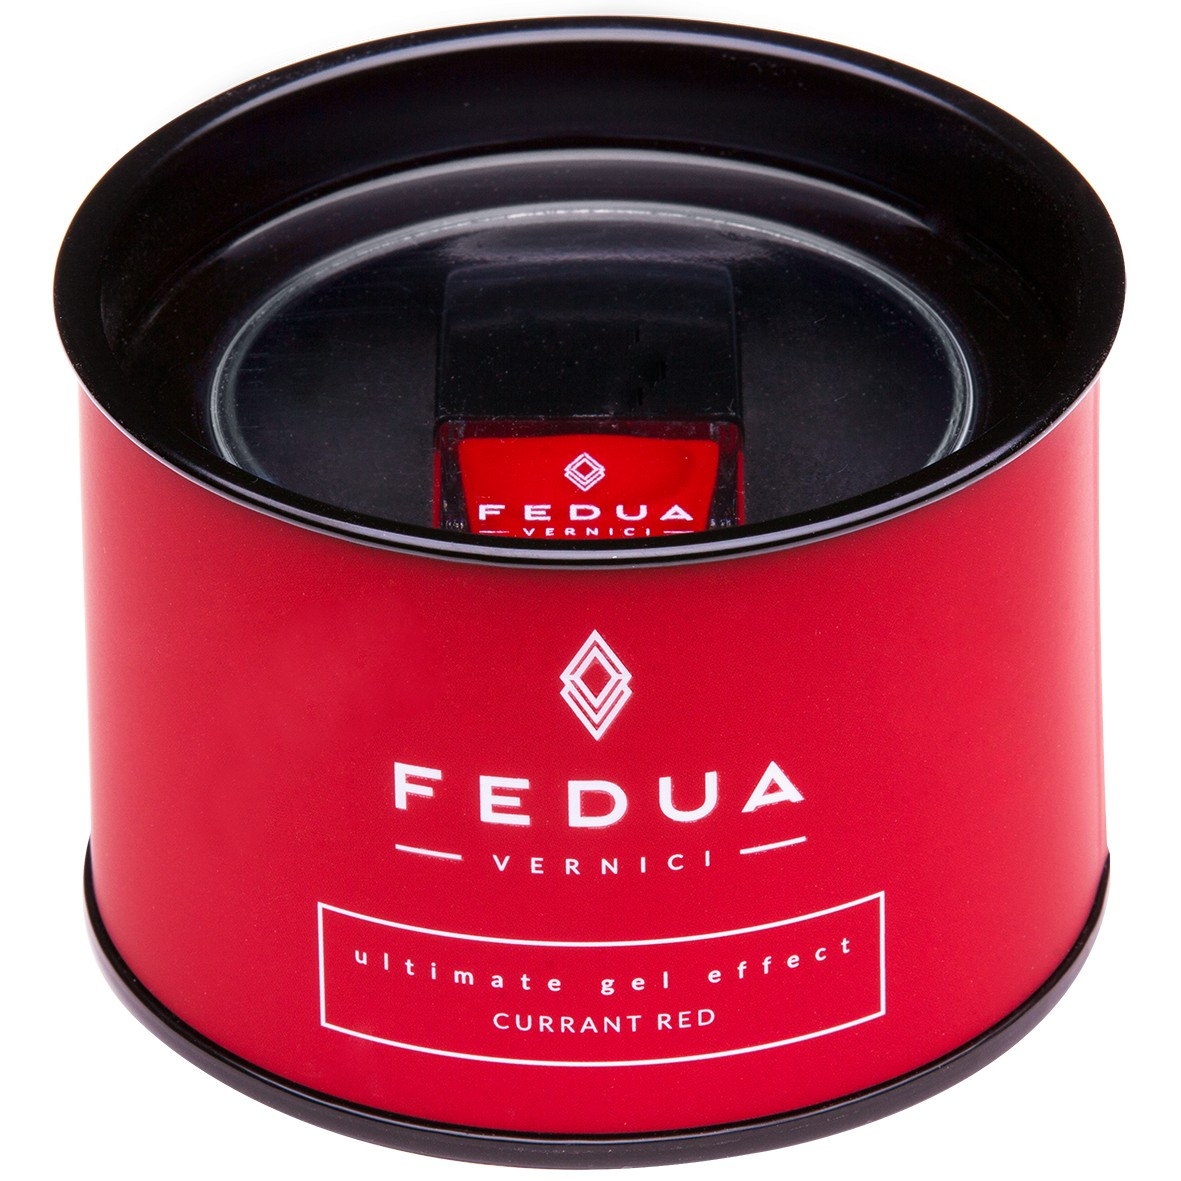 Currant Red - FEDUA